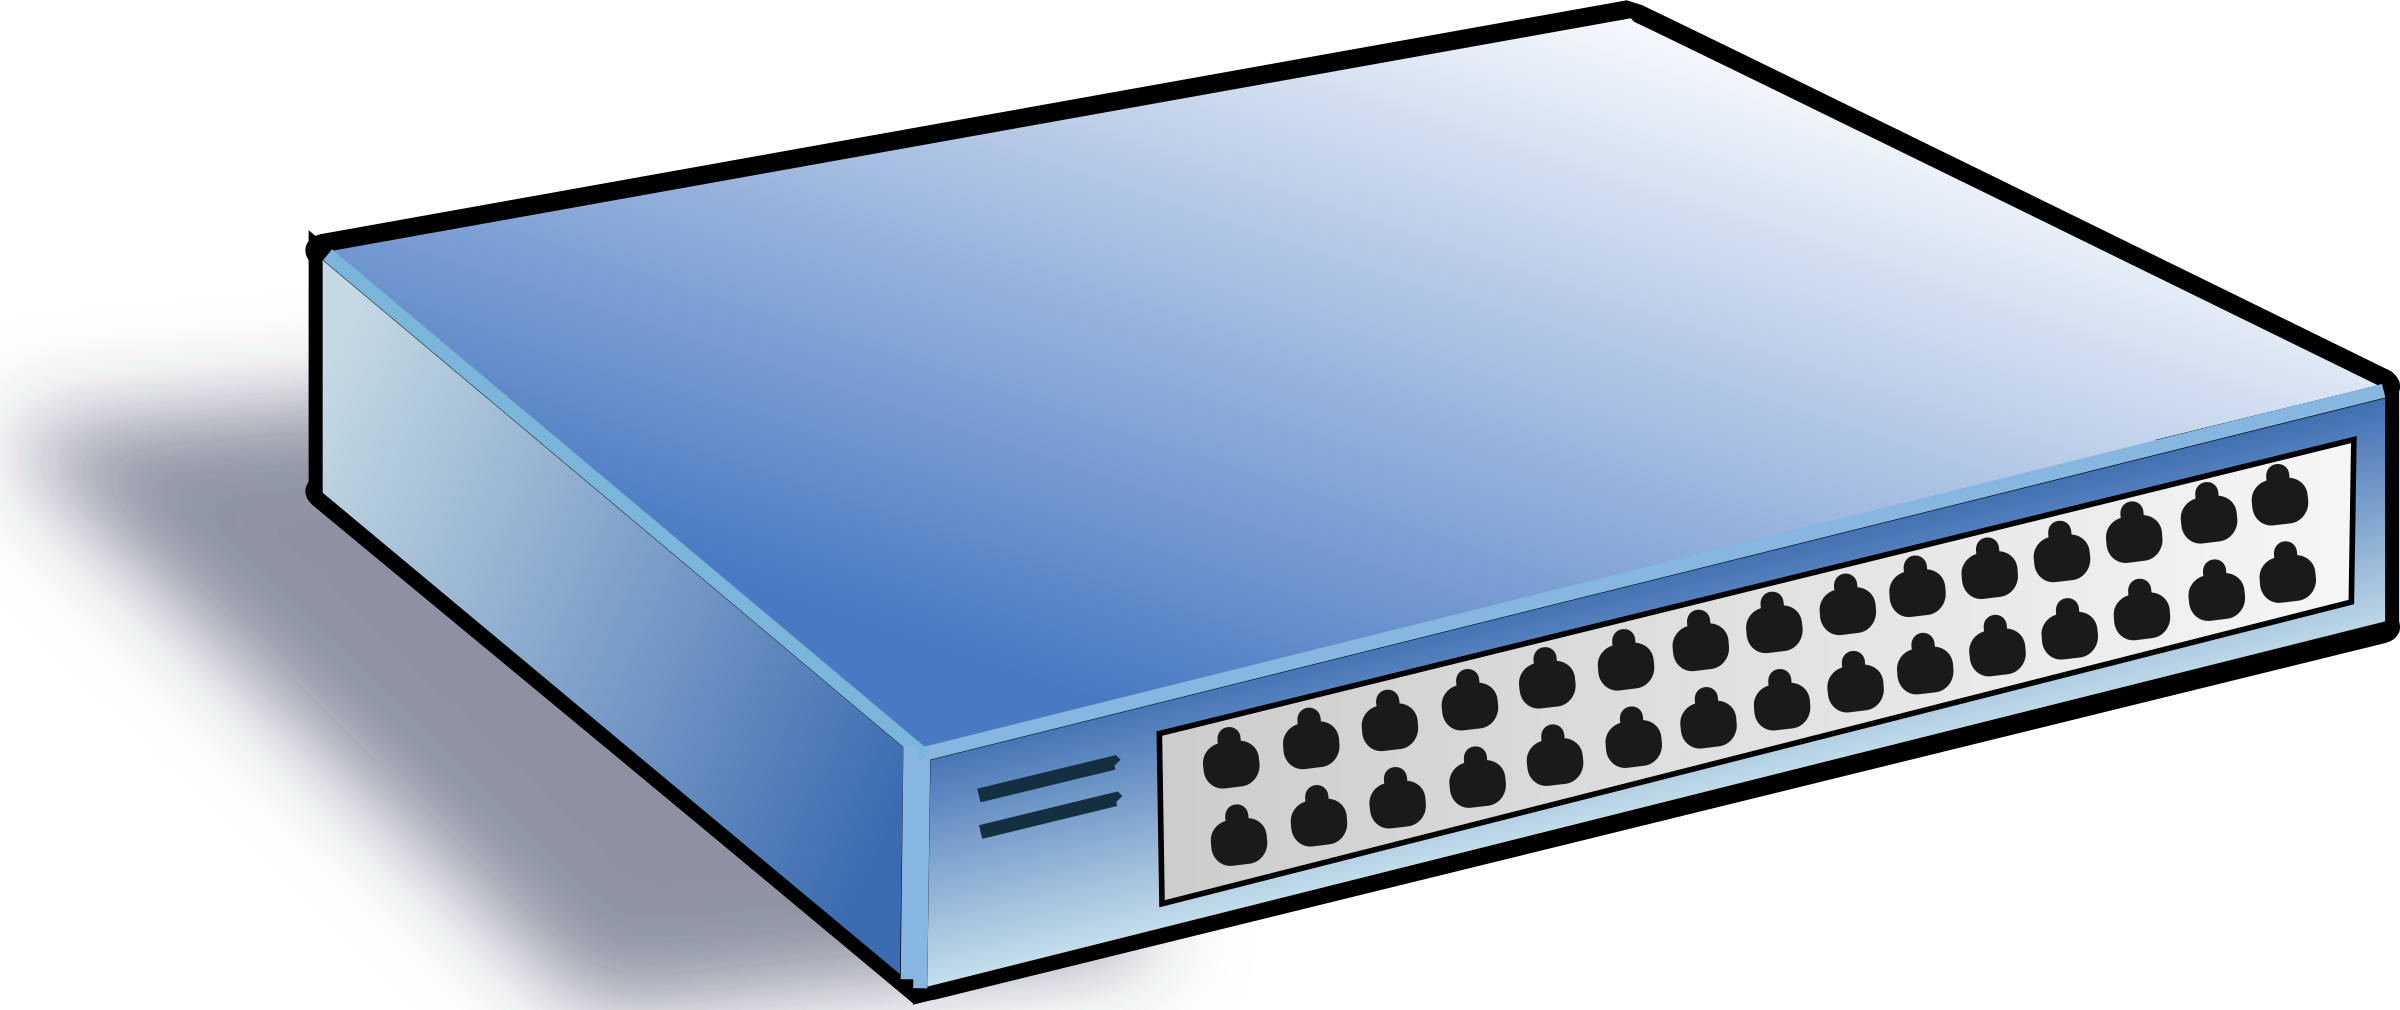 Clipart Of Network Switch